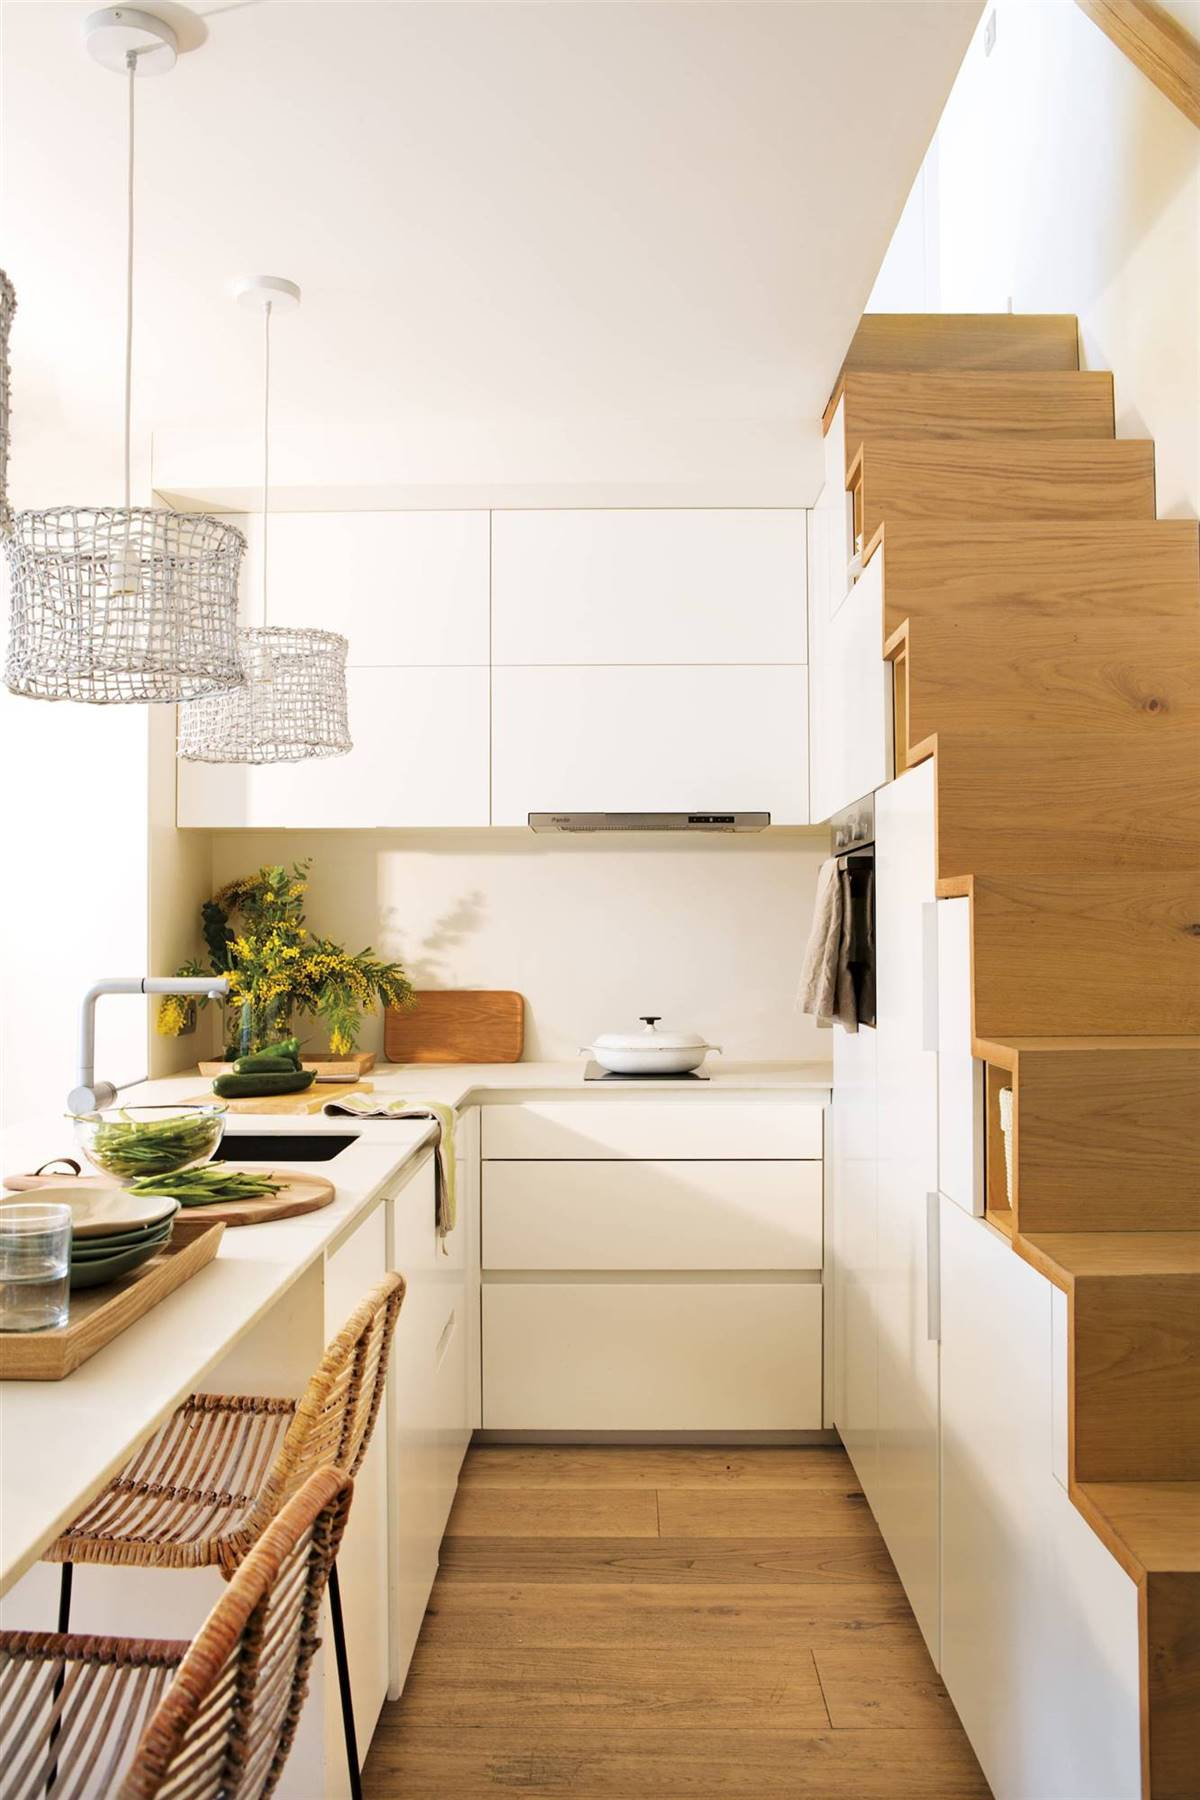 A KITCHEN UNDER THE STAIRS